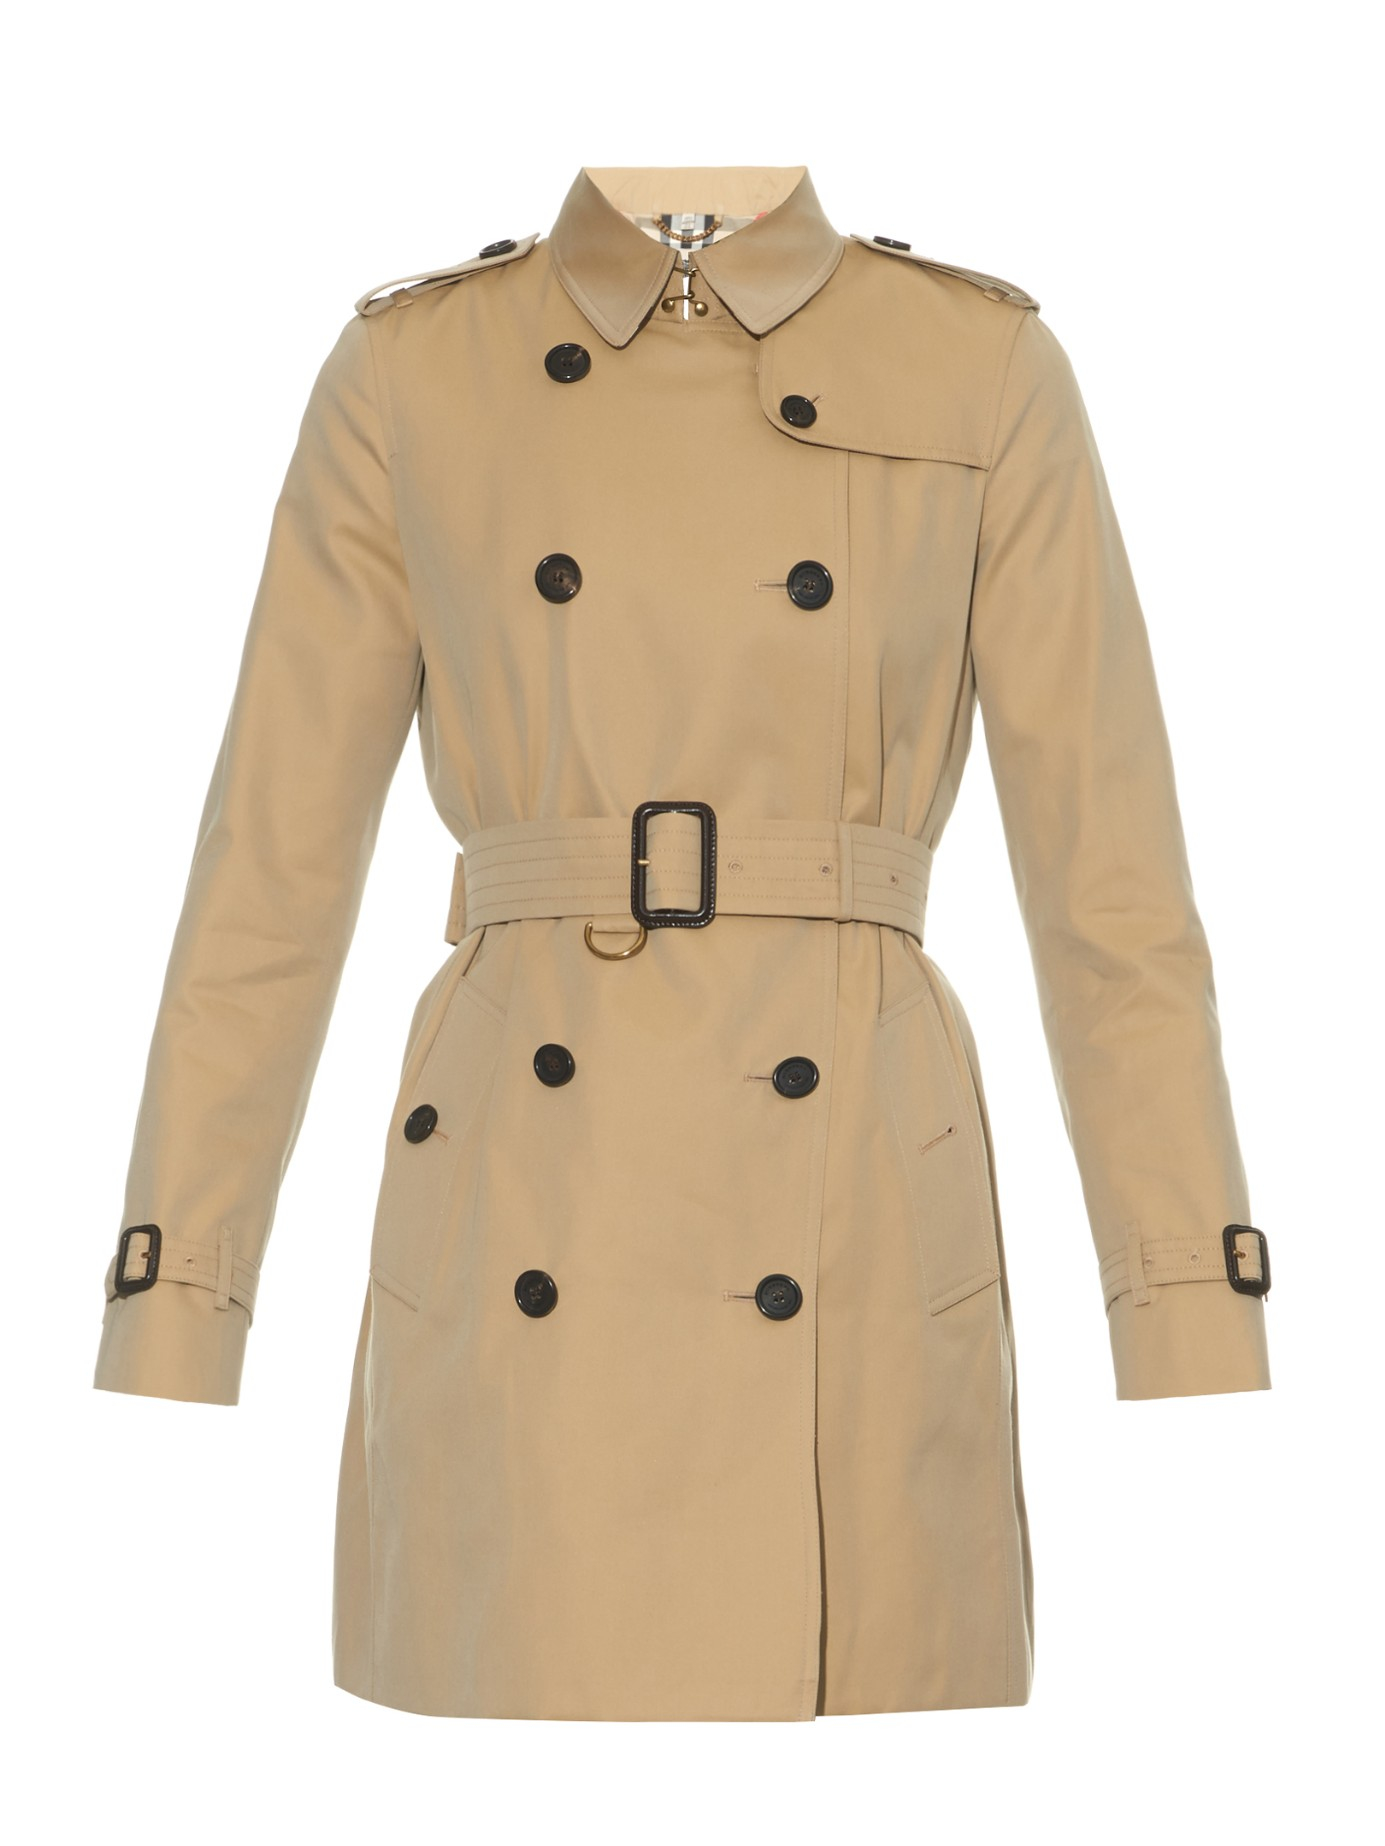 Womens Burberry Kensington Mid Trench Coat, Size 10 US 44 IT - Beige